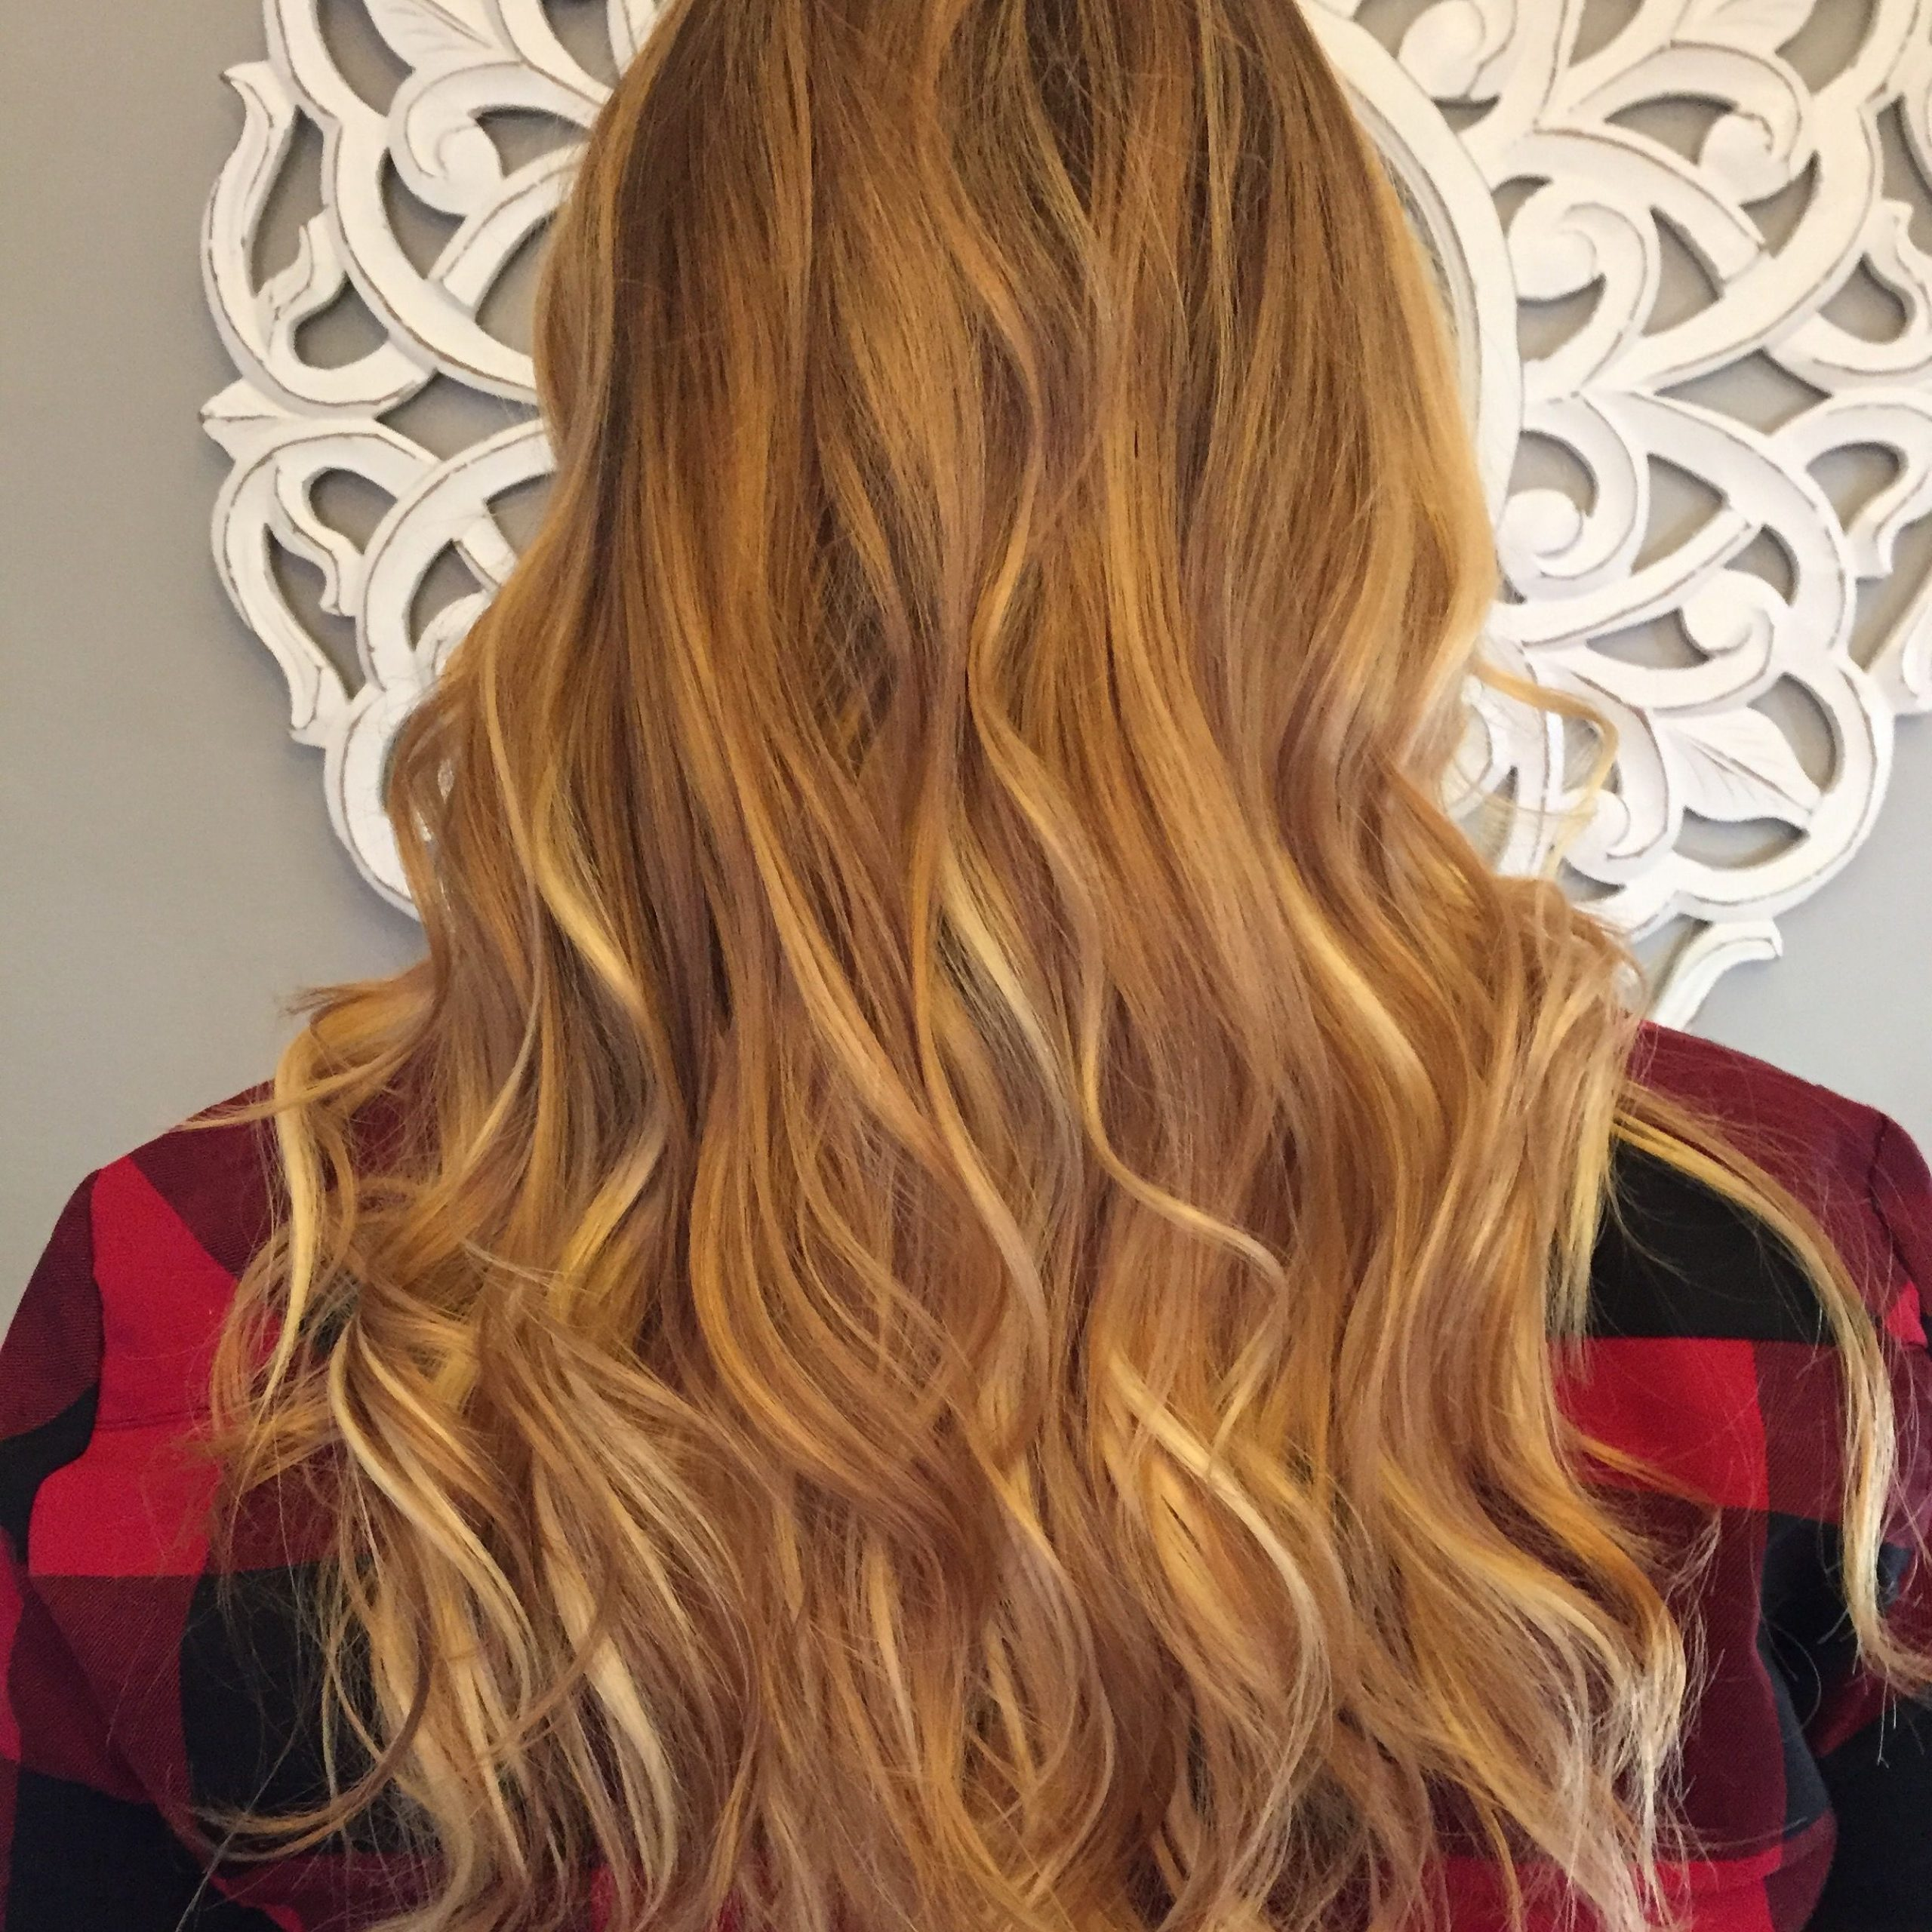 Blonde With Regard To Well Known Golden Blonde Balayage On Long Curls Hairstyles (View 17 of 20)